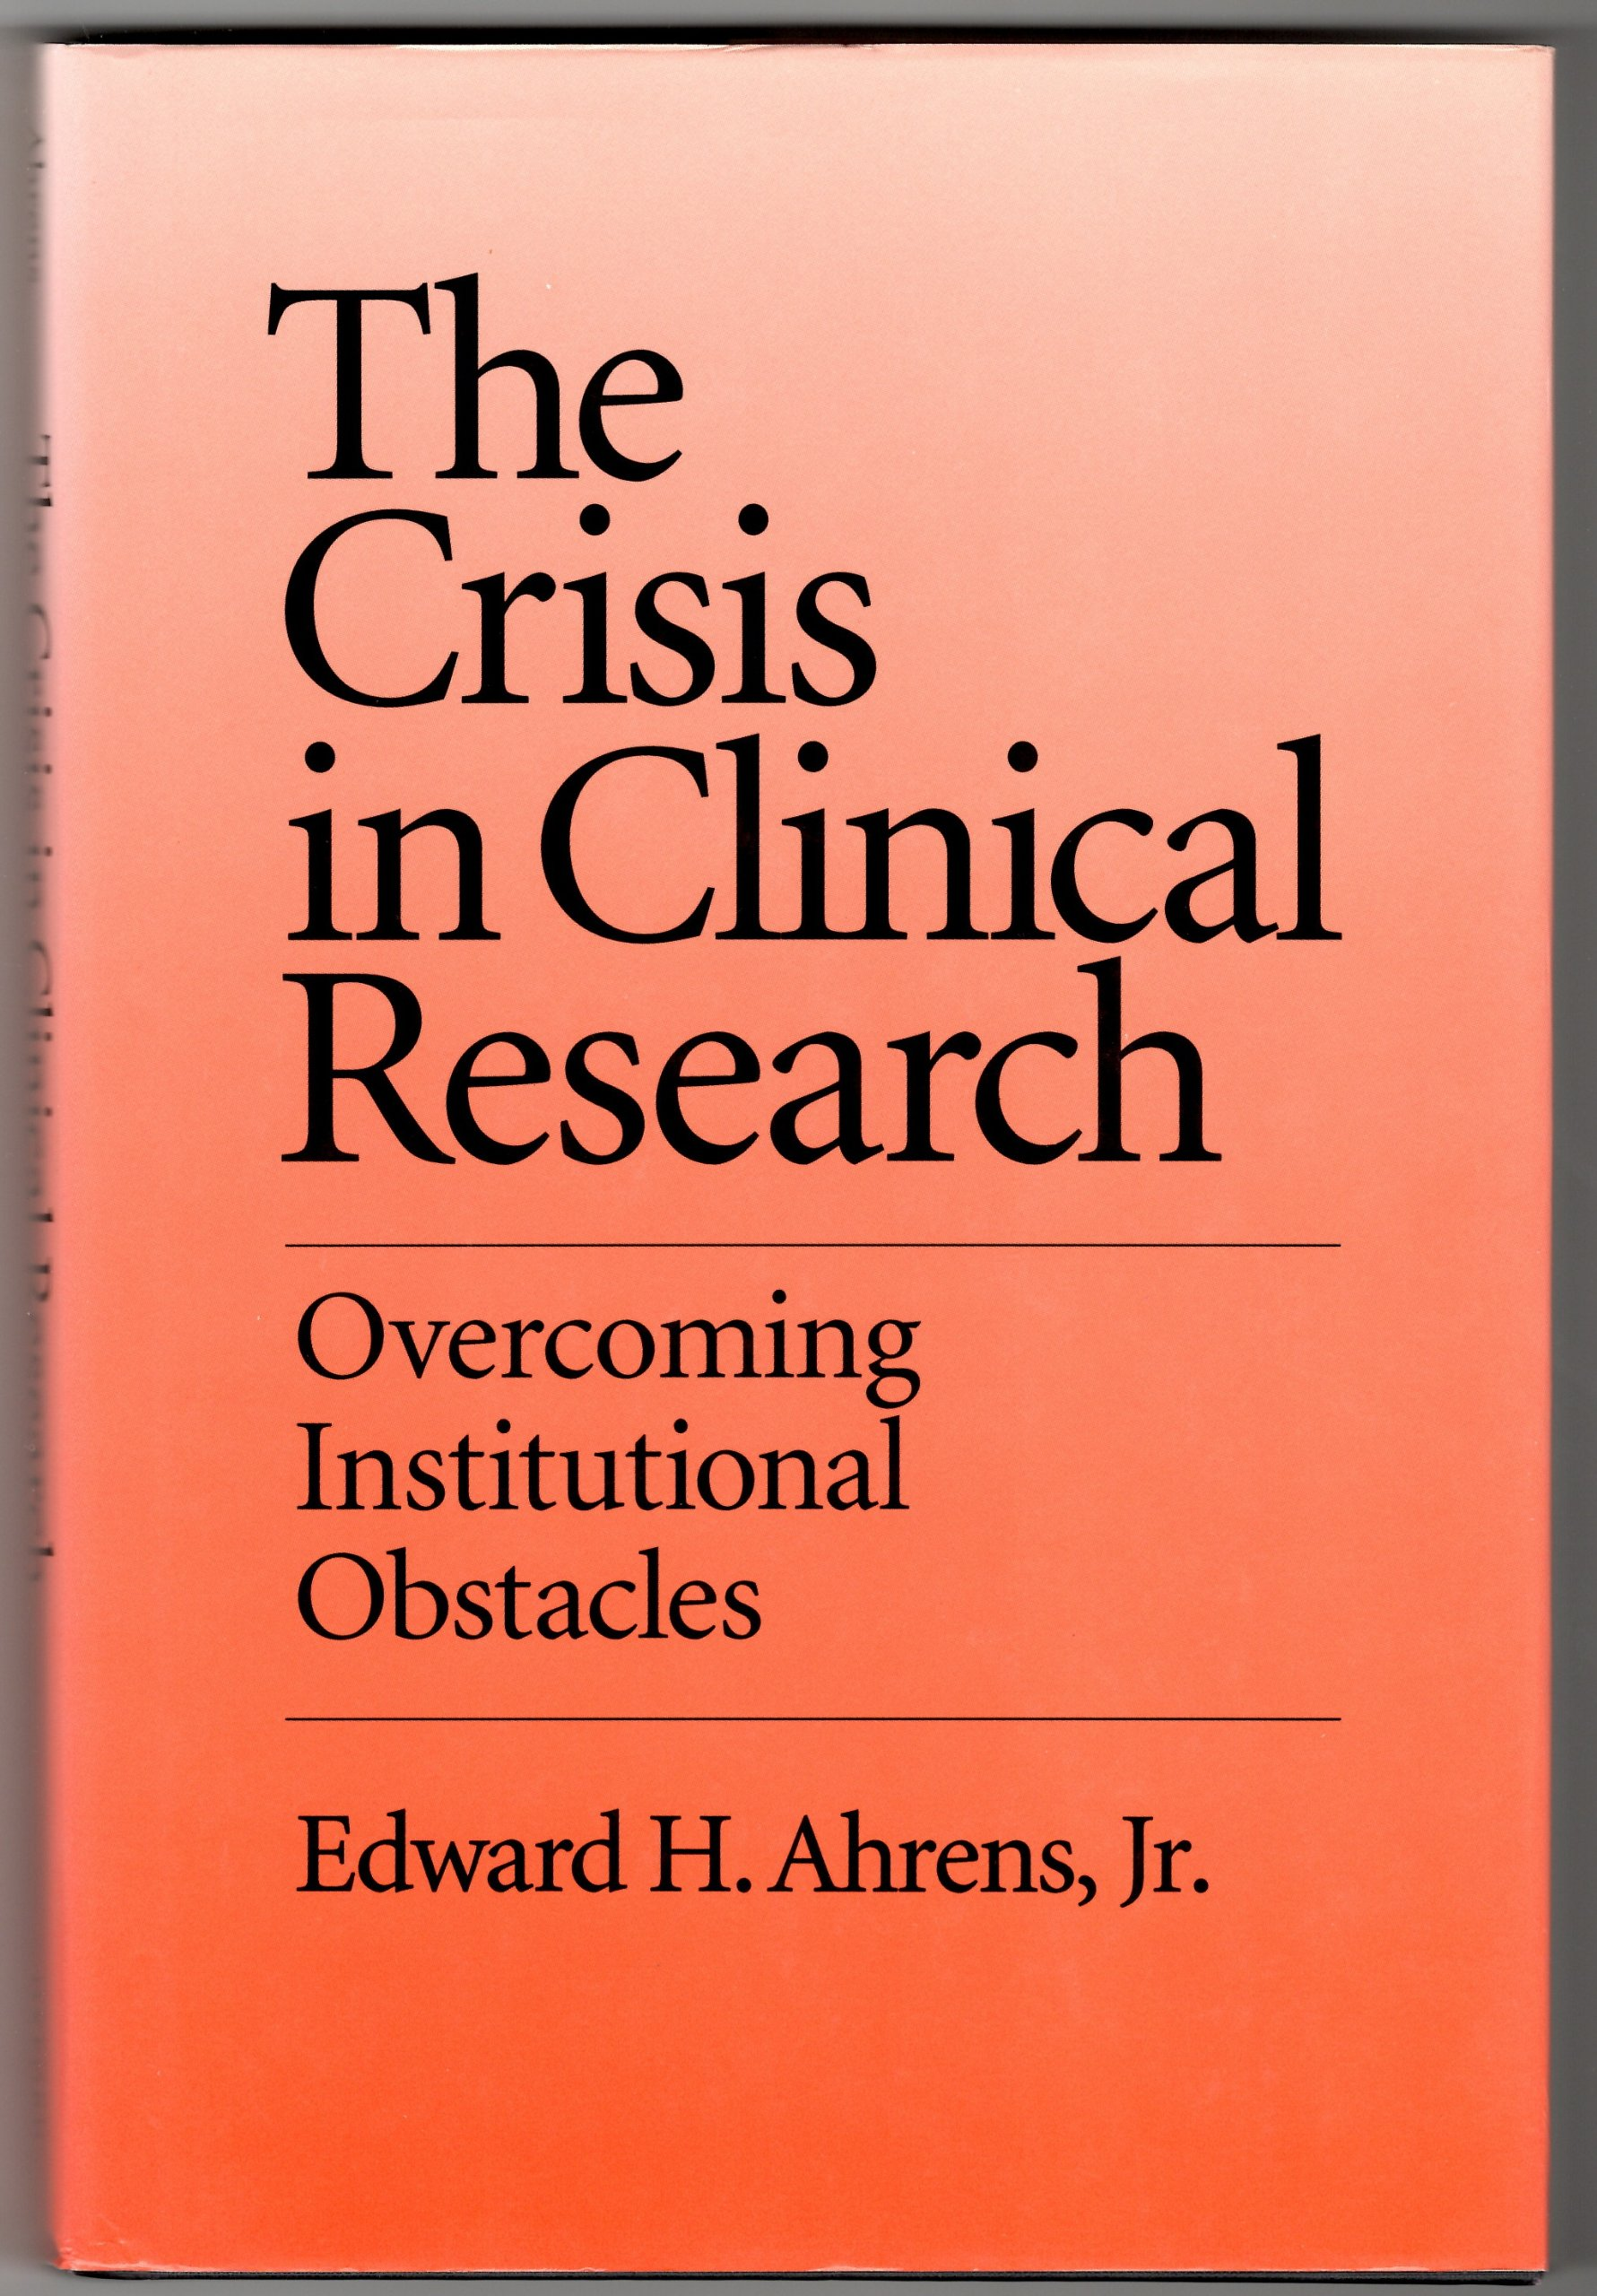 The Crisis in Clinical Research: Overcoming Institutional Obstacles